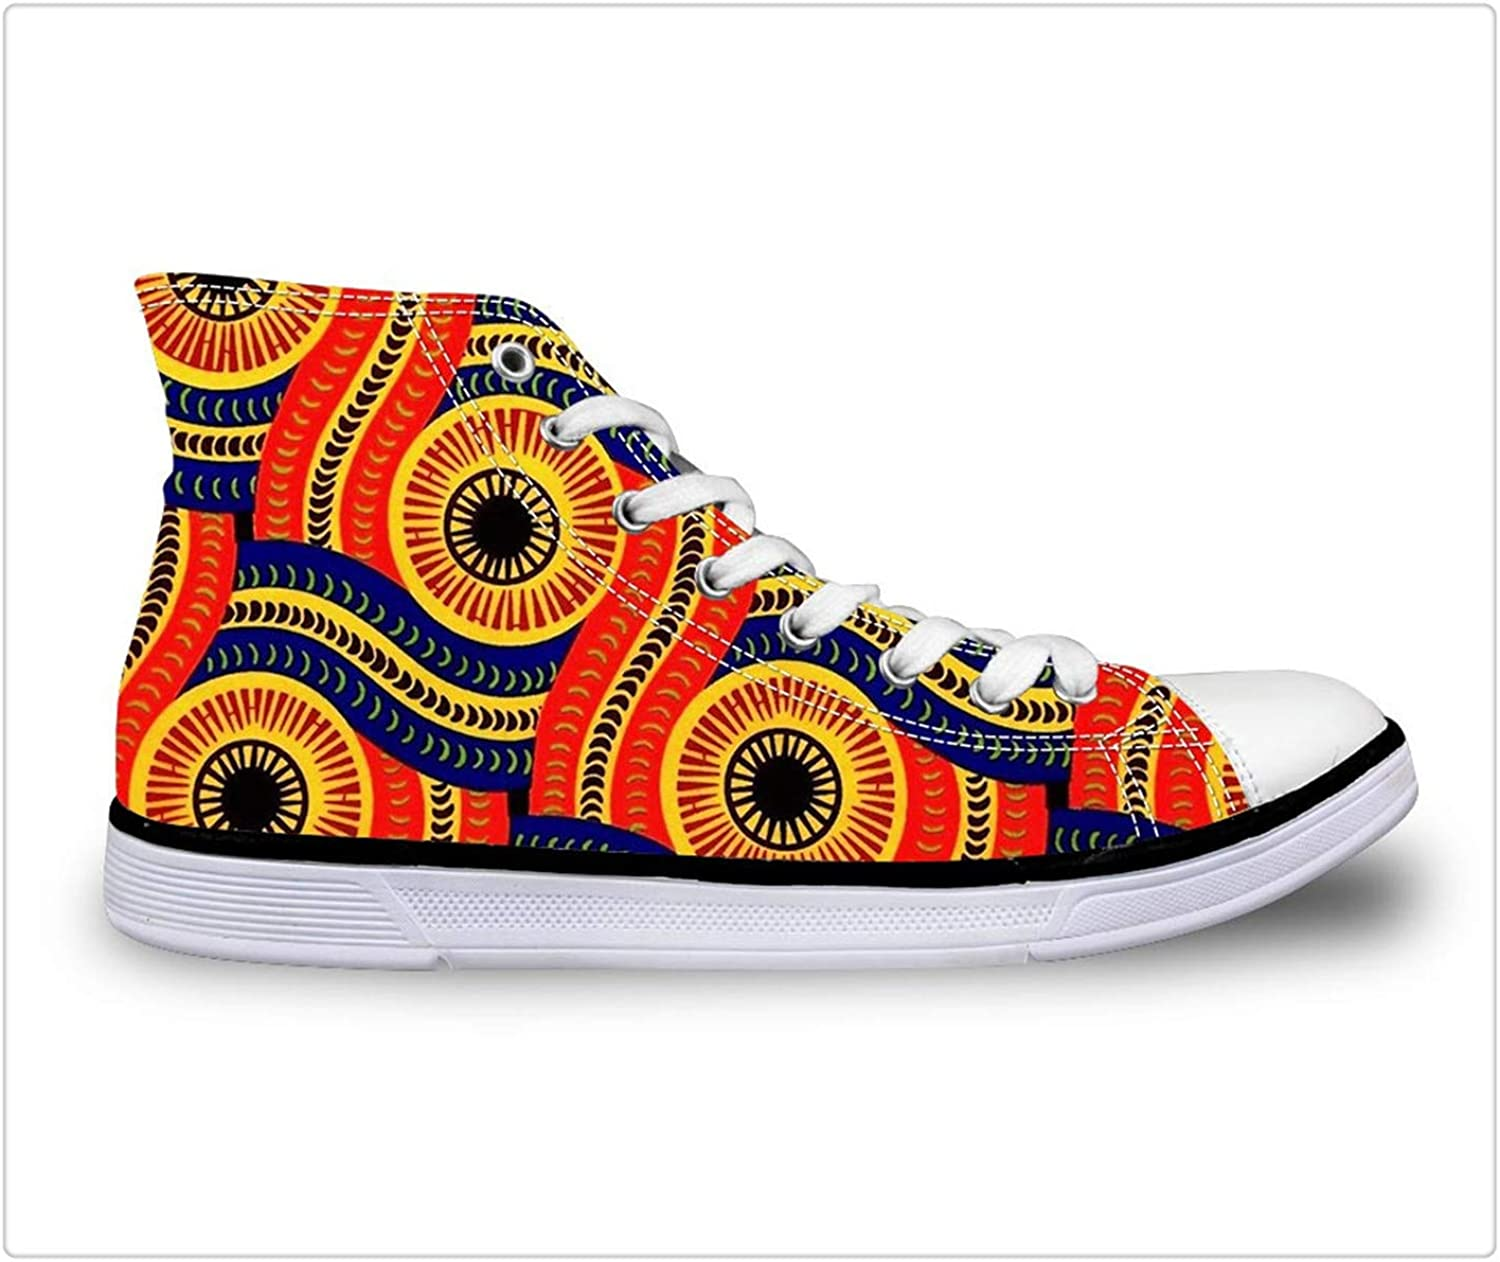 Yyixianma Women's Volucanized shoes African Traditional Printing High-top Canvas shoes for Teenagers Fashion Sneakers shoes T0428AK 40